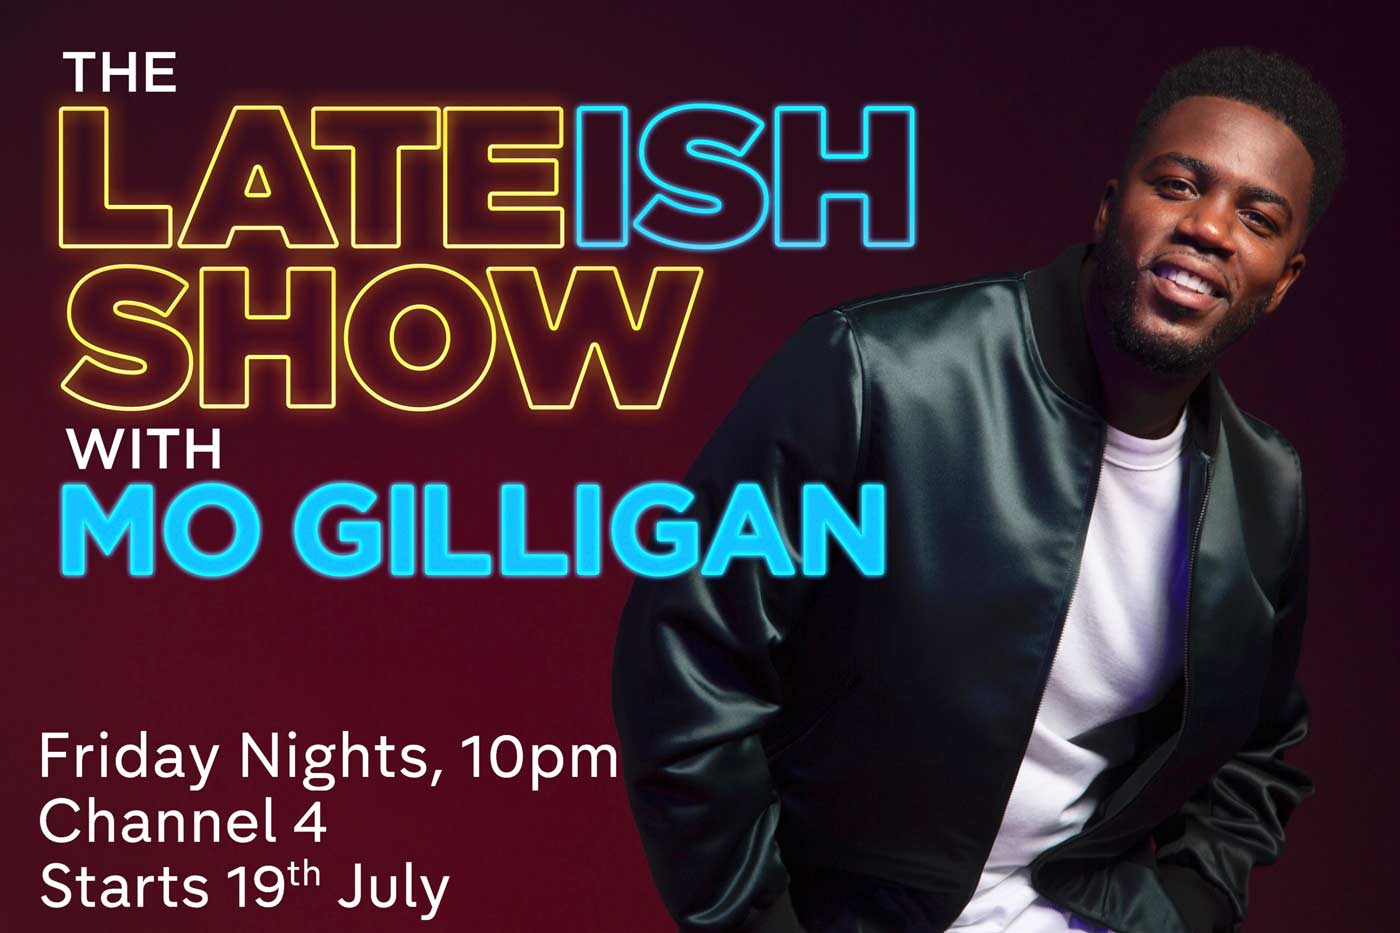 Mo Gilligan The Lateish Show - Channel 4